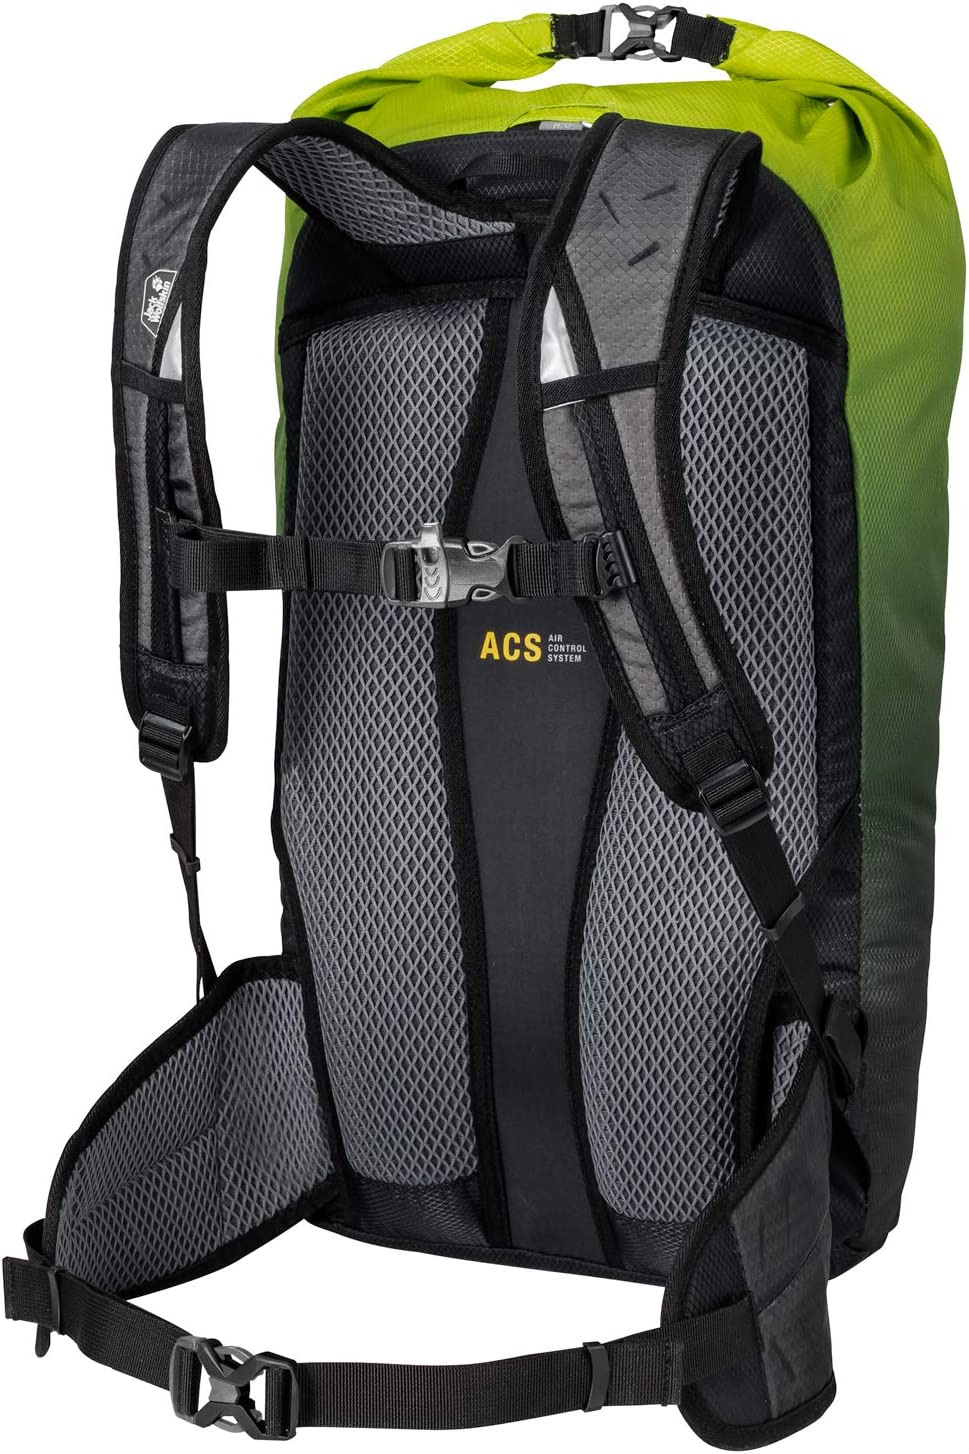 Jack Wolfskin Jack Wolfskin Halo 26l Roll Top Action Sports Backpack & Hydration Bladder Compatible Aurora Grey from Amazon | People